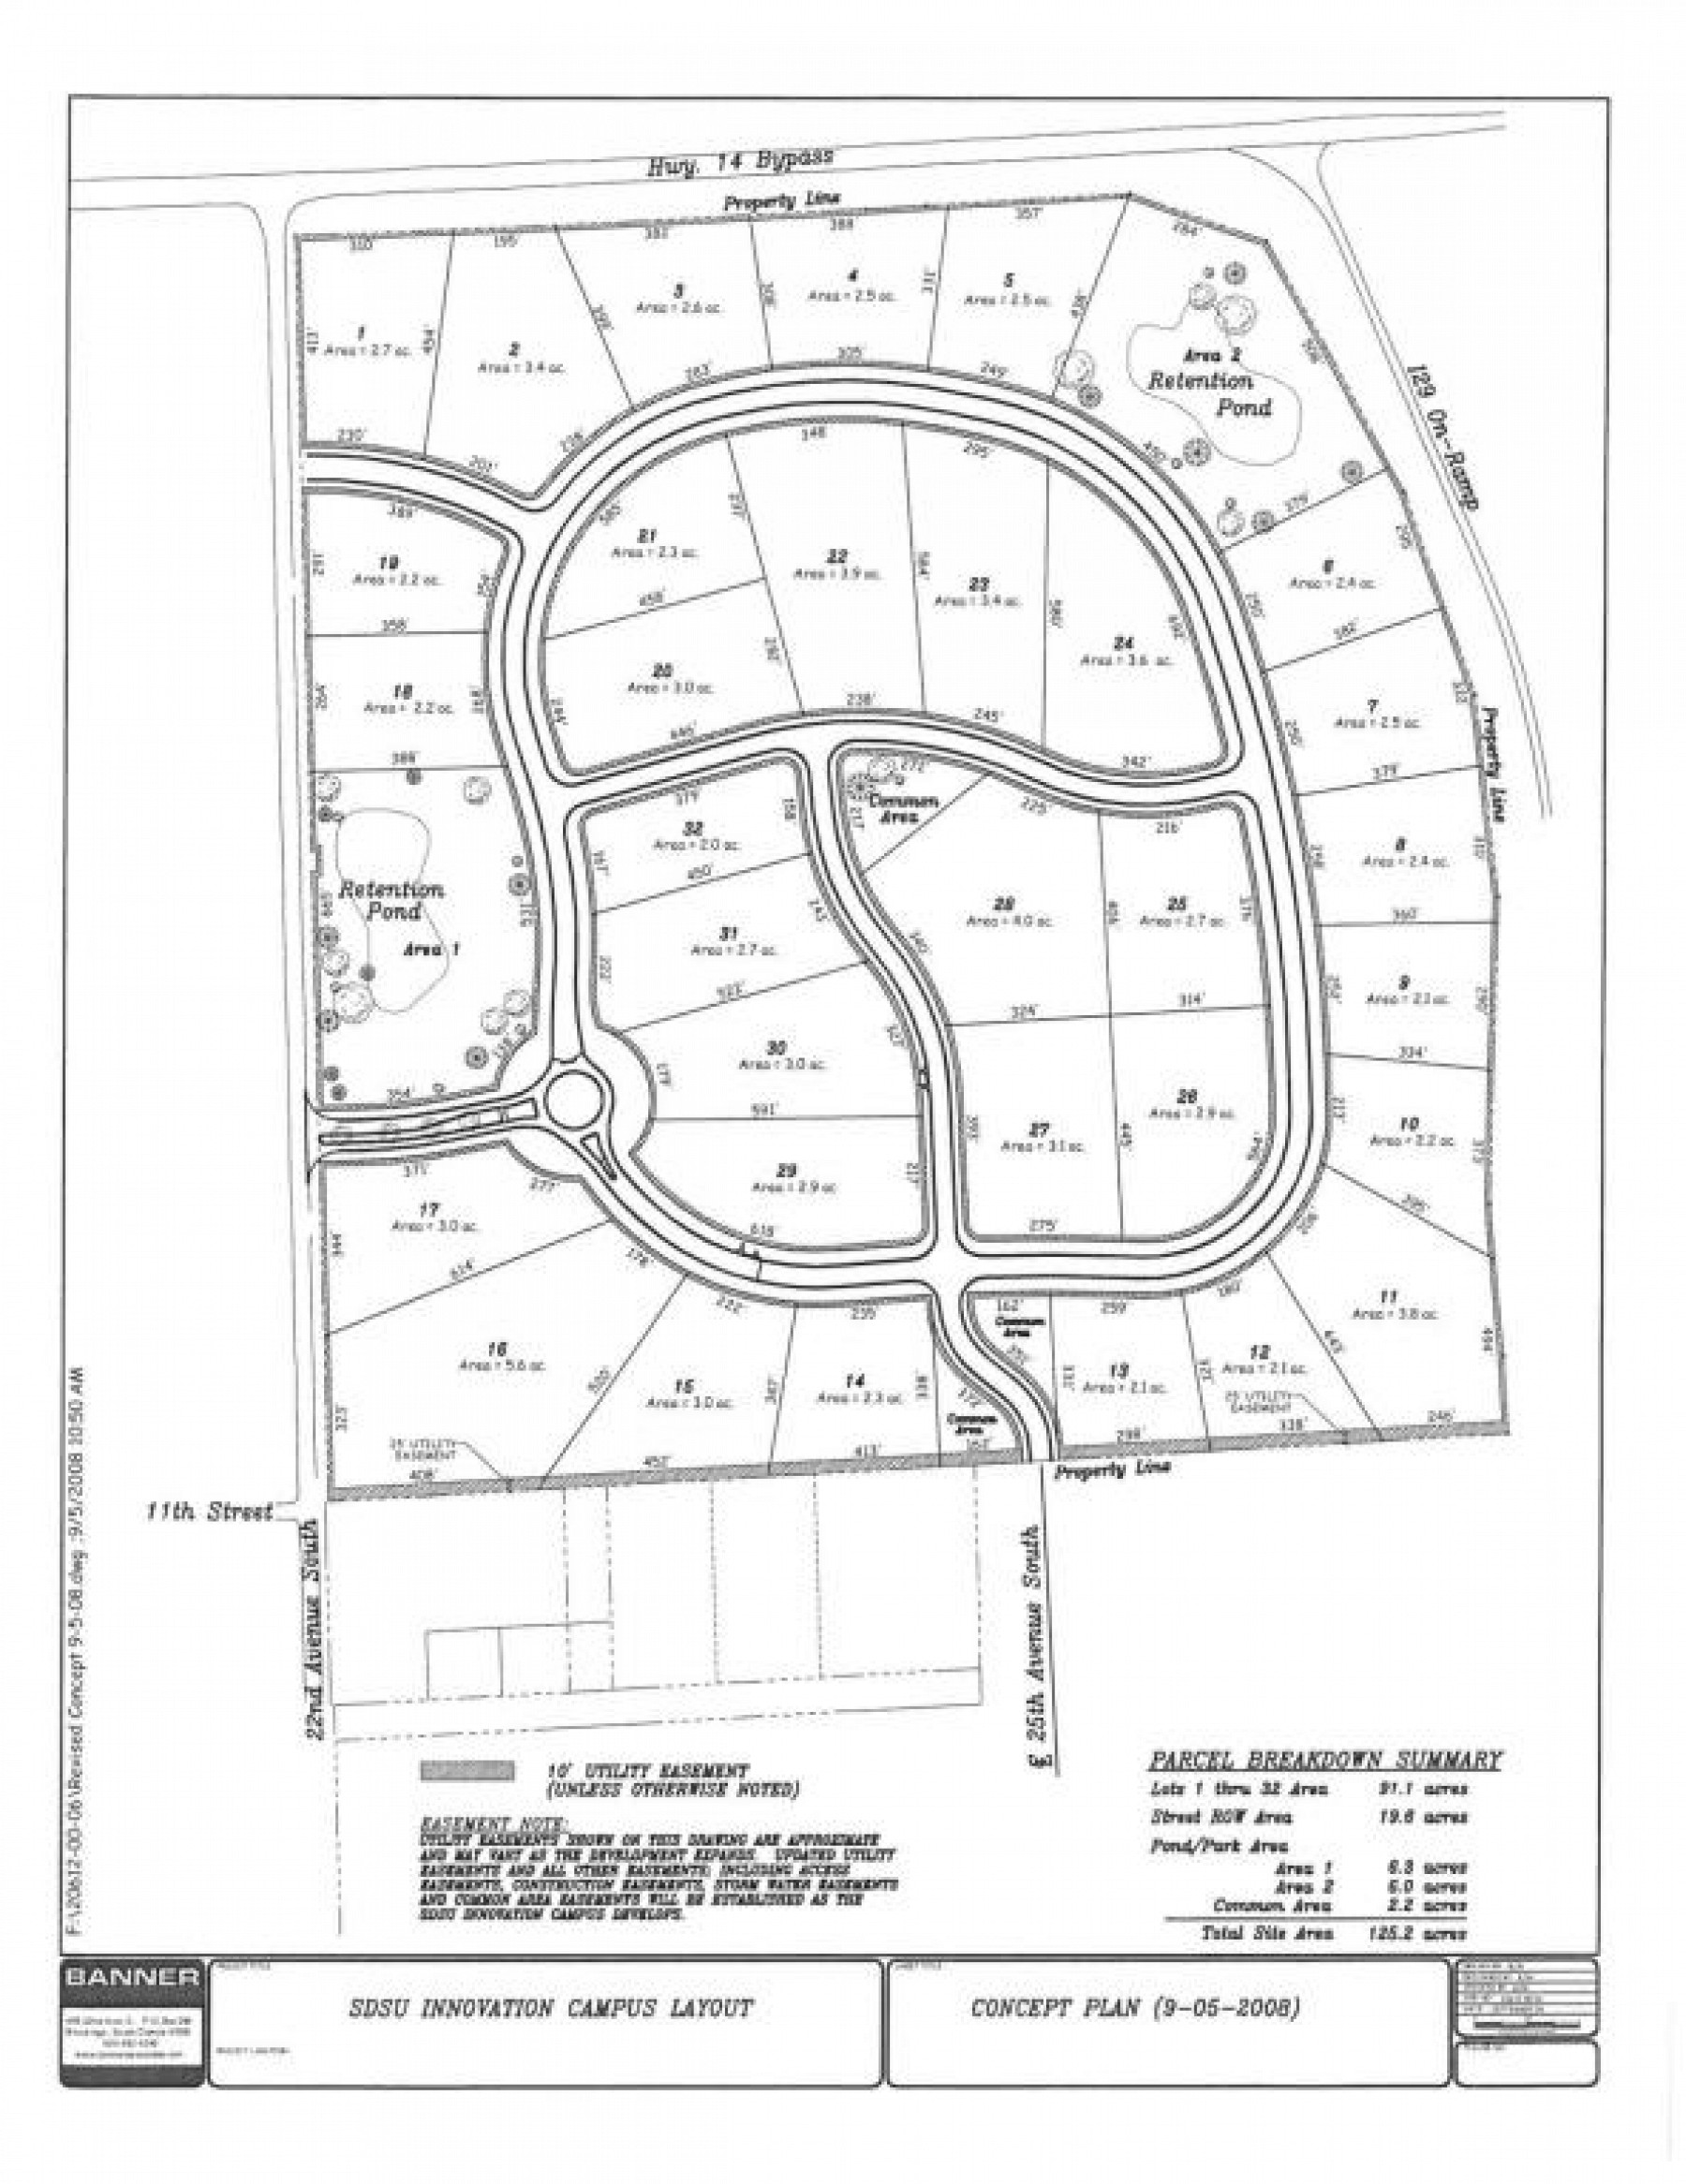 Lot 28 Innovation Campus, Brookings, SD 57006